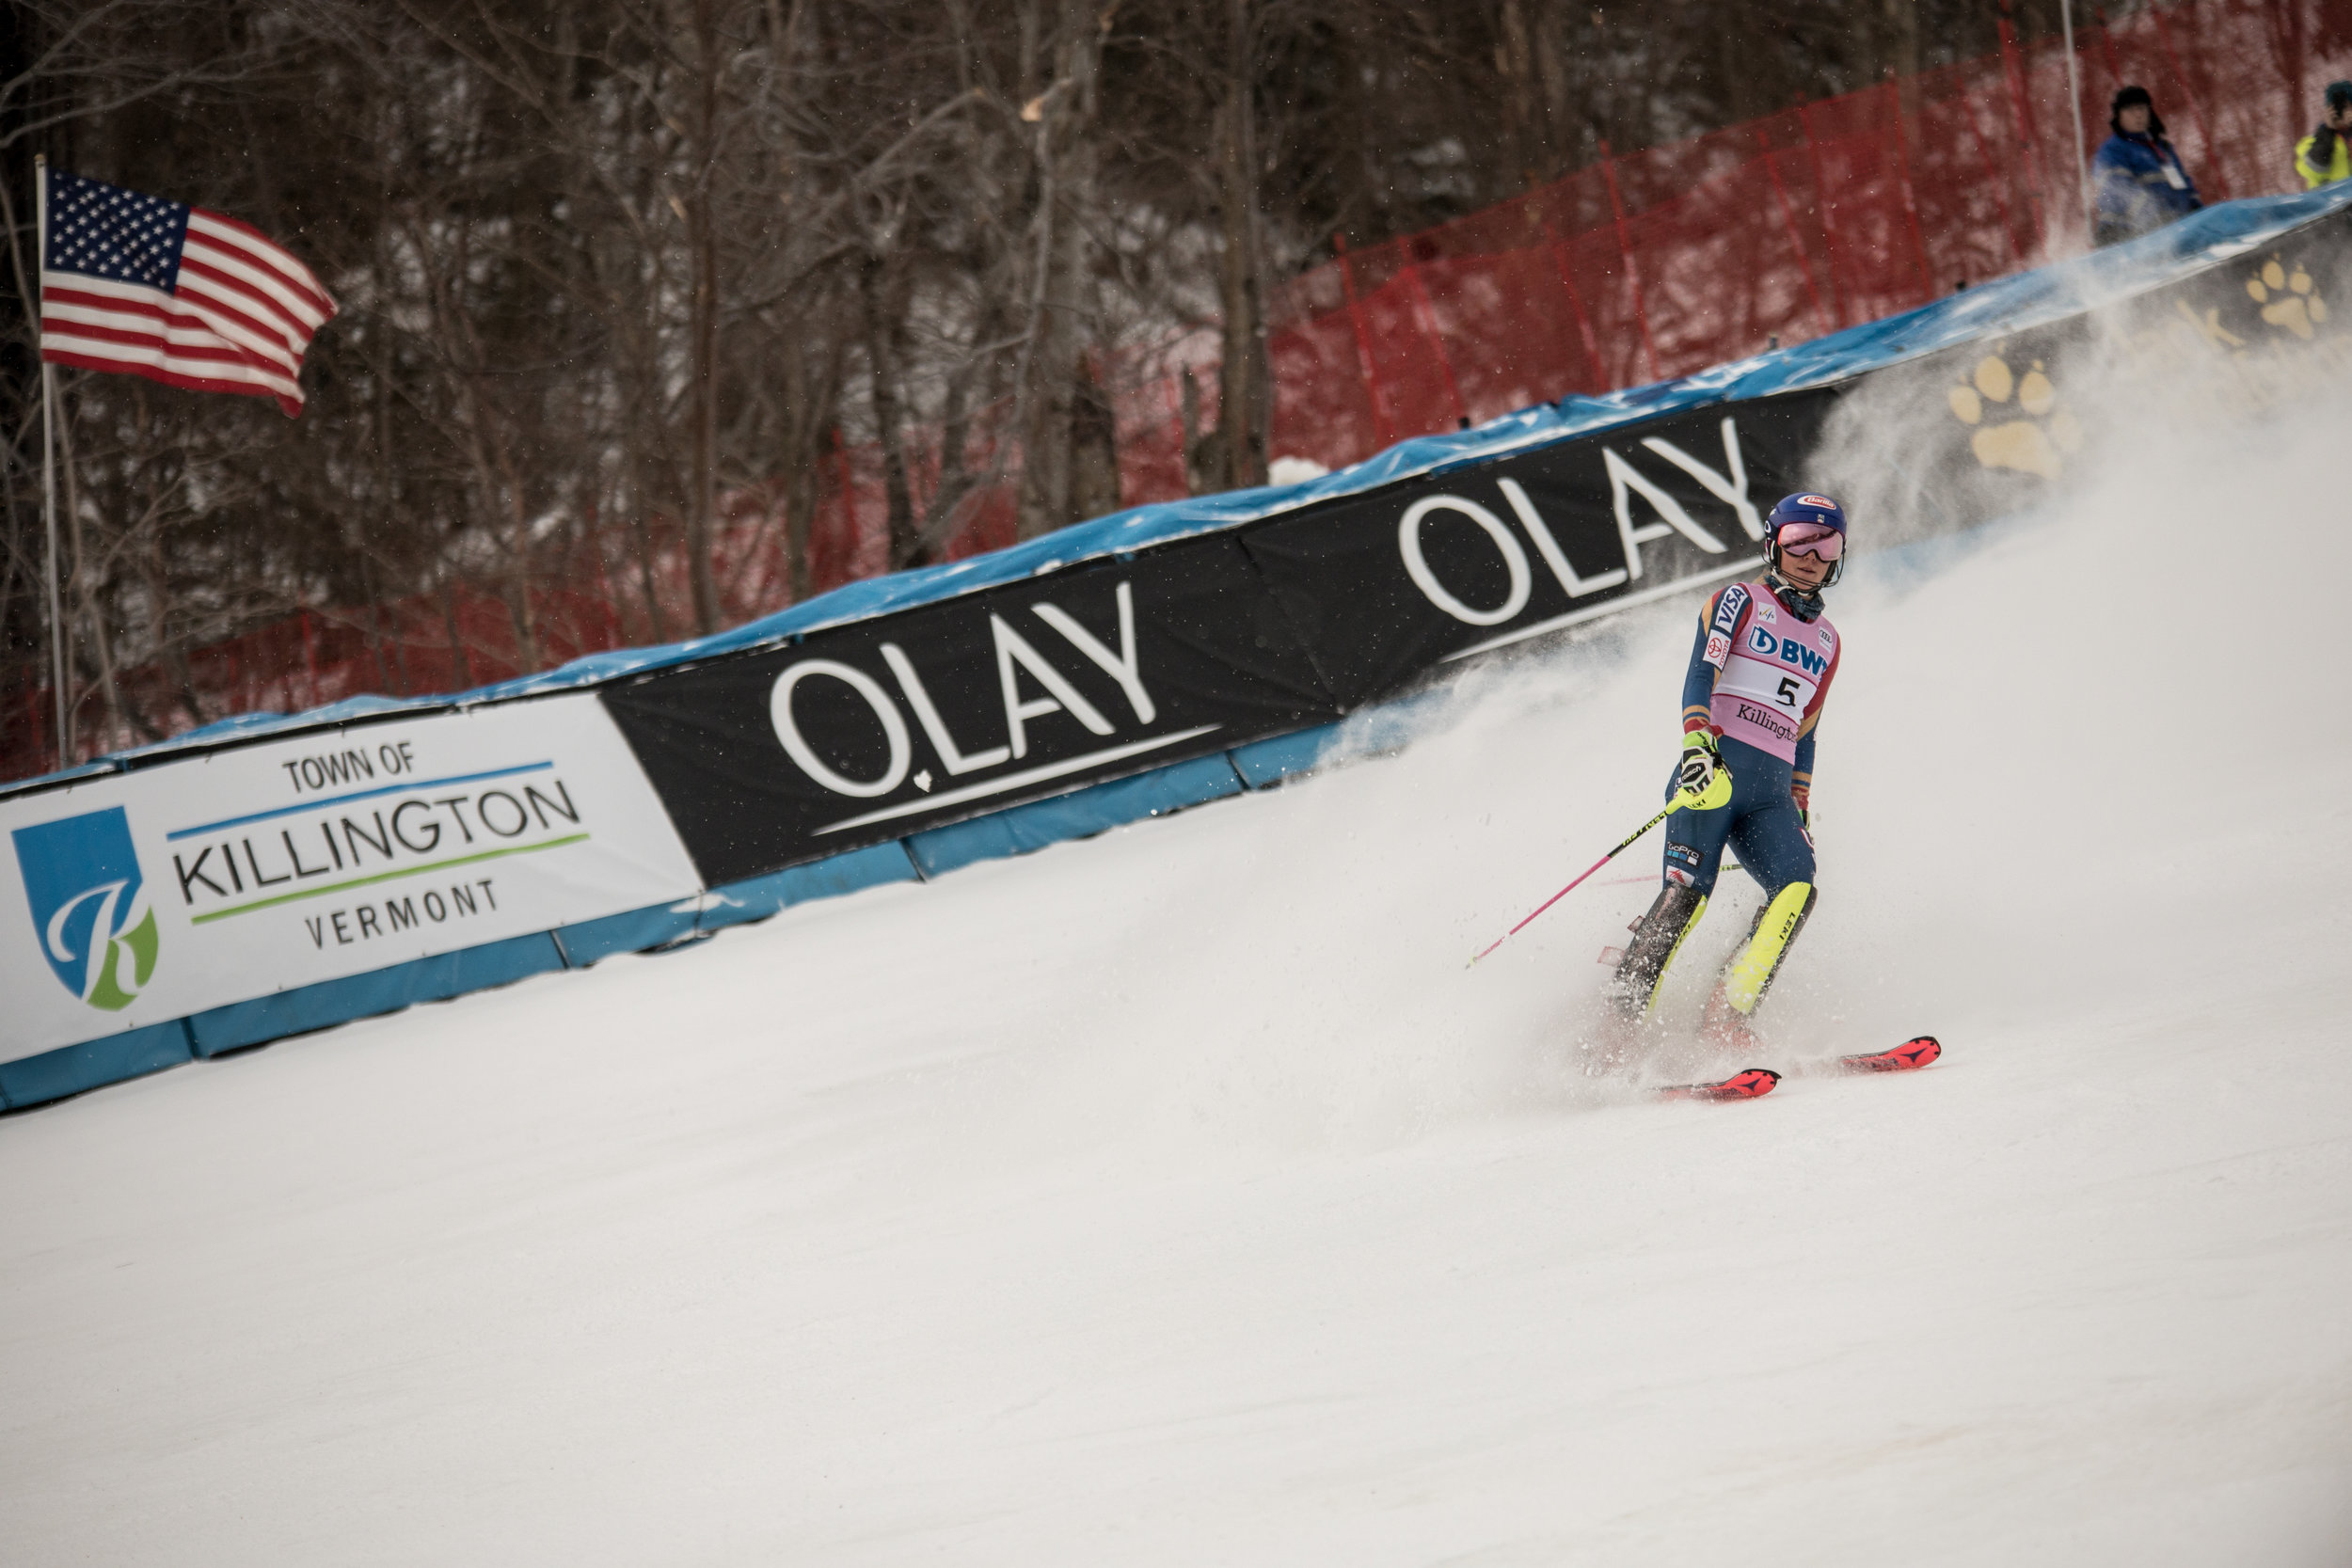 Team USA local NE sensation, M. Shiffrin after WINNING both runs and the overall by a huge amount in Sunday's slalom.